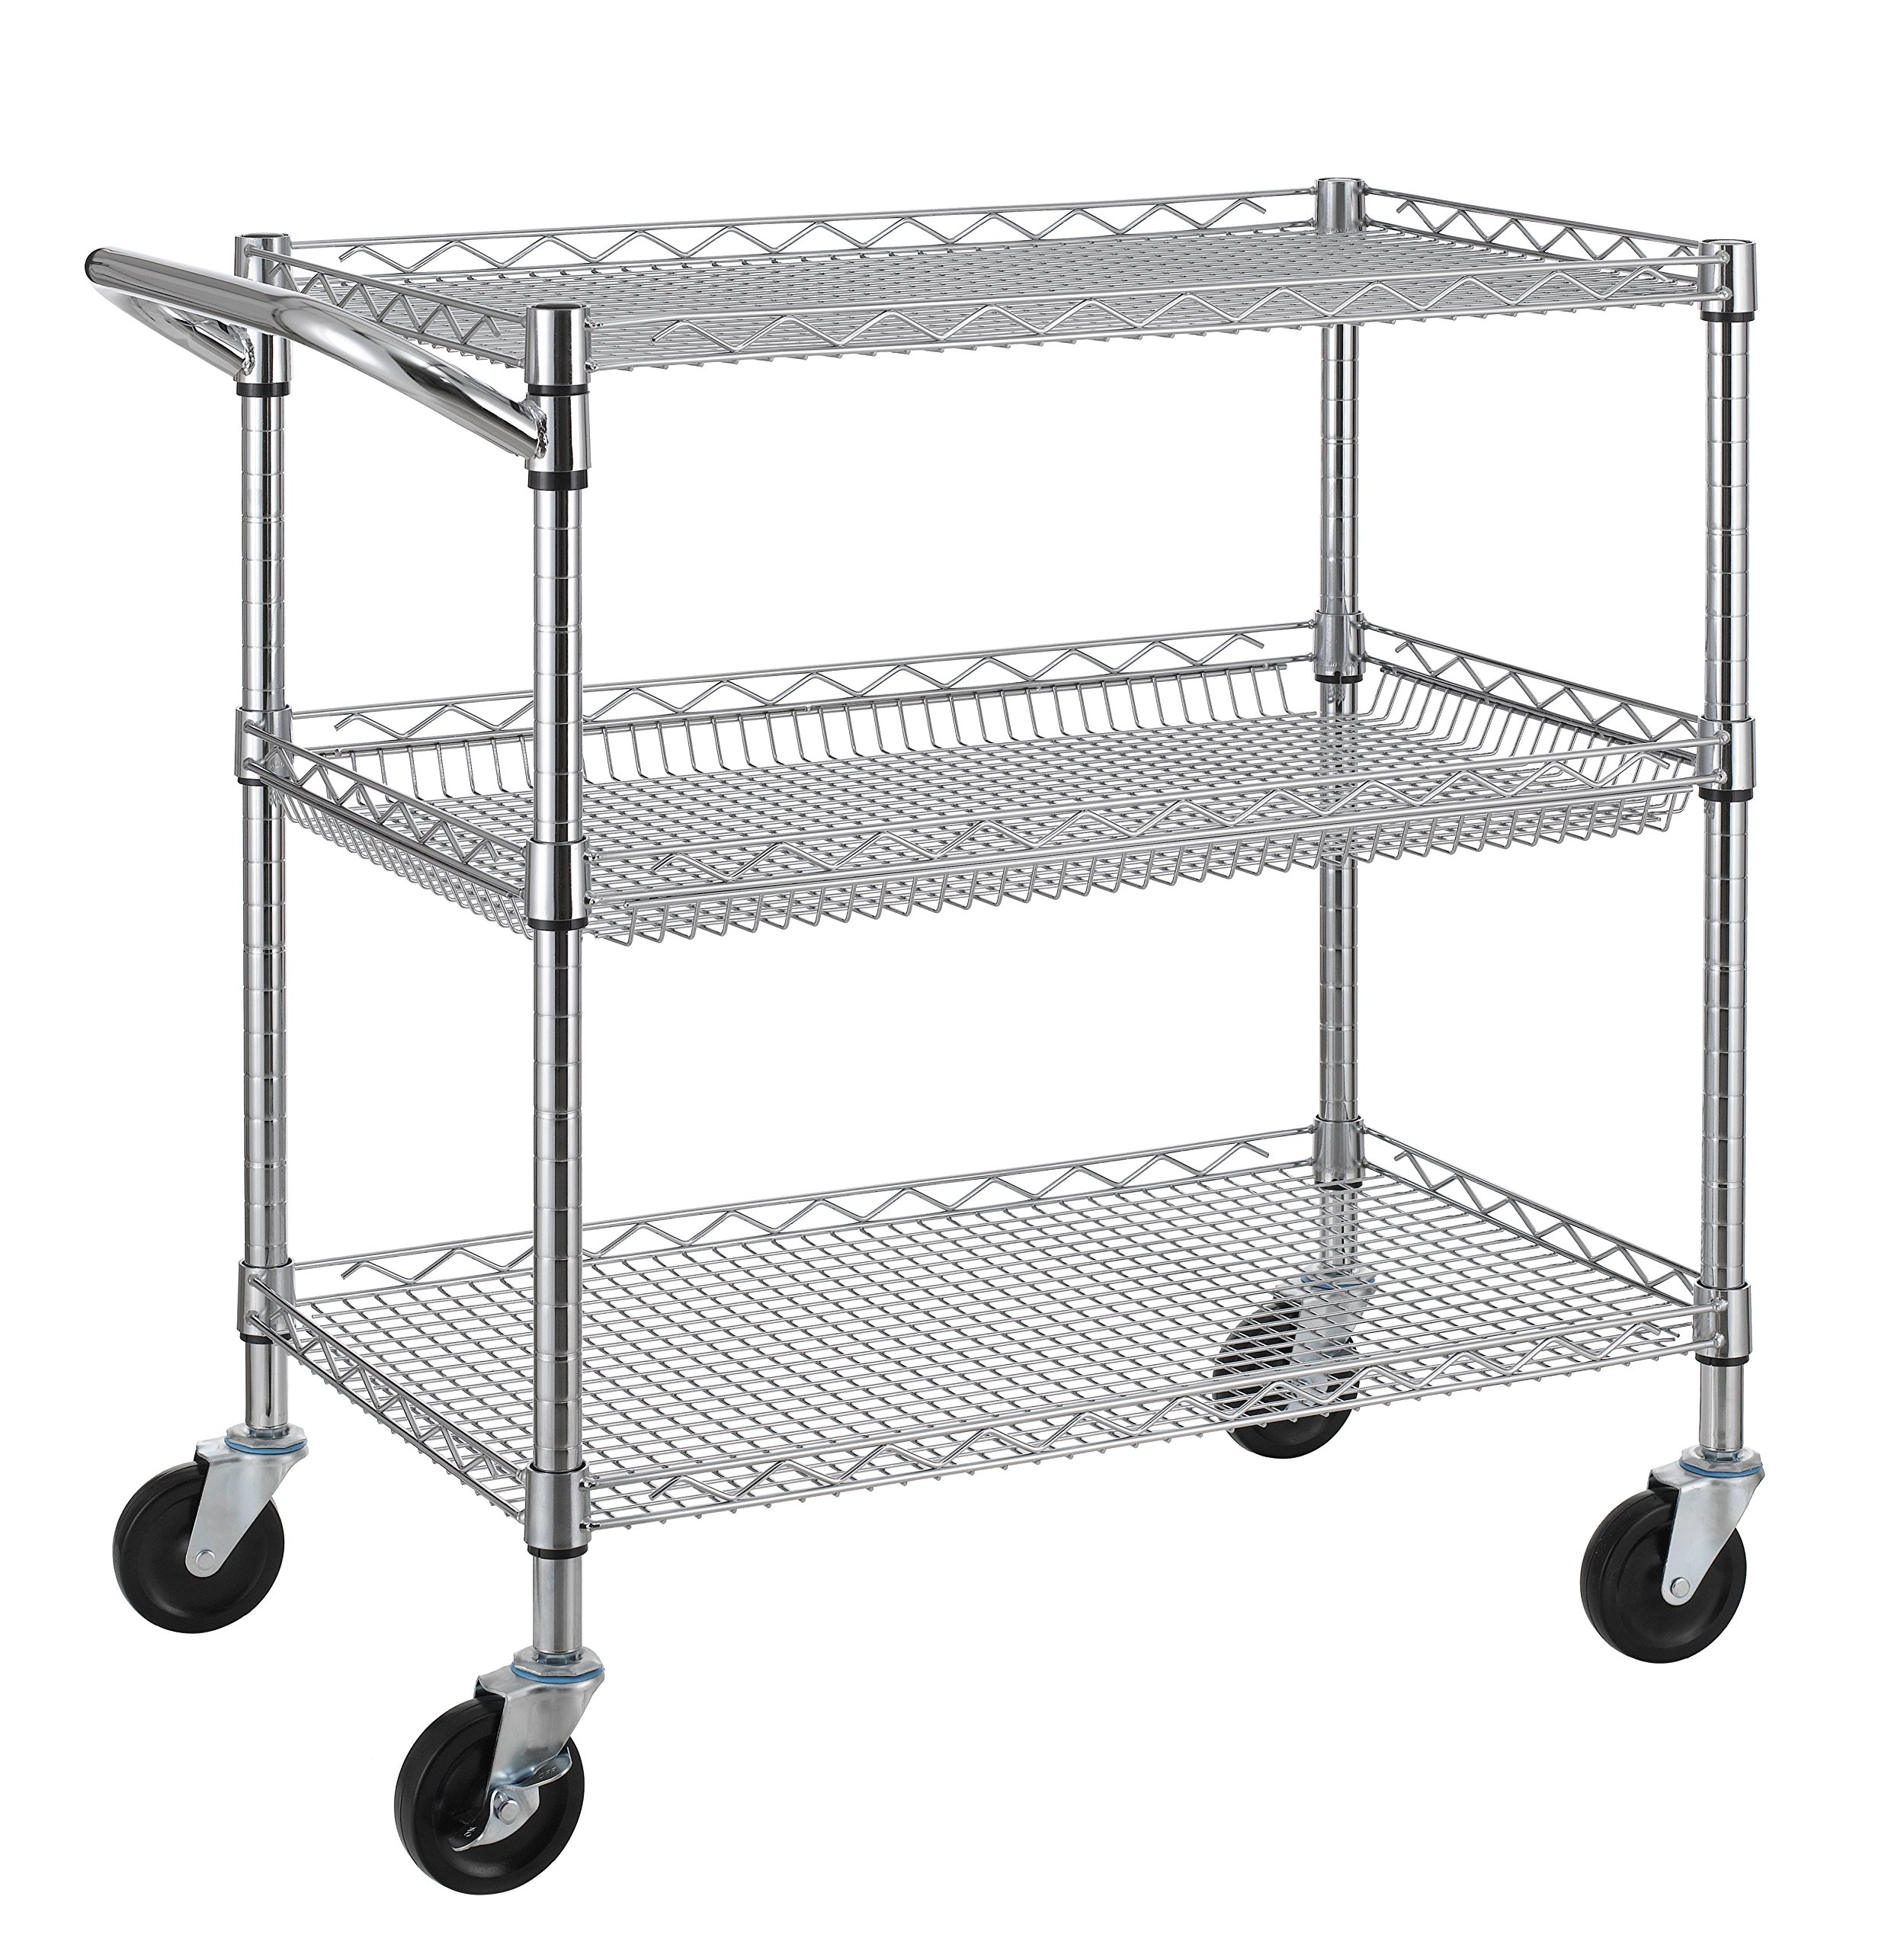 Finnhomy 3 Tier Heavy Duty Commercial Grade Utility Cart, Wire Rolling Cart with Handle Bar, Steel Service Cart with Wheels, Utility Shelf Plant Display Shelf Food Storage Trolley, NSF Listed by Finnhomy